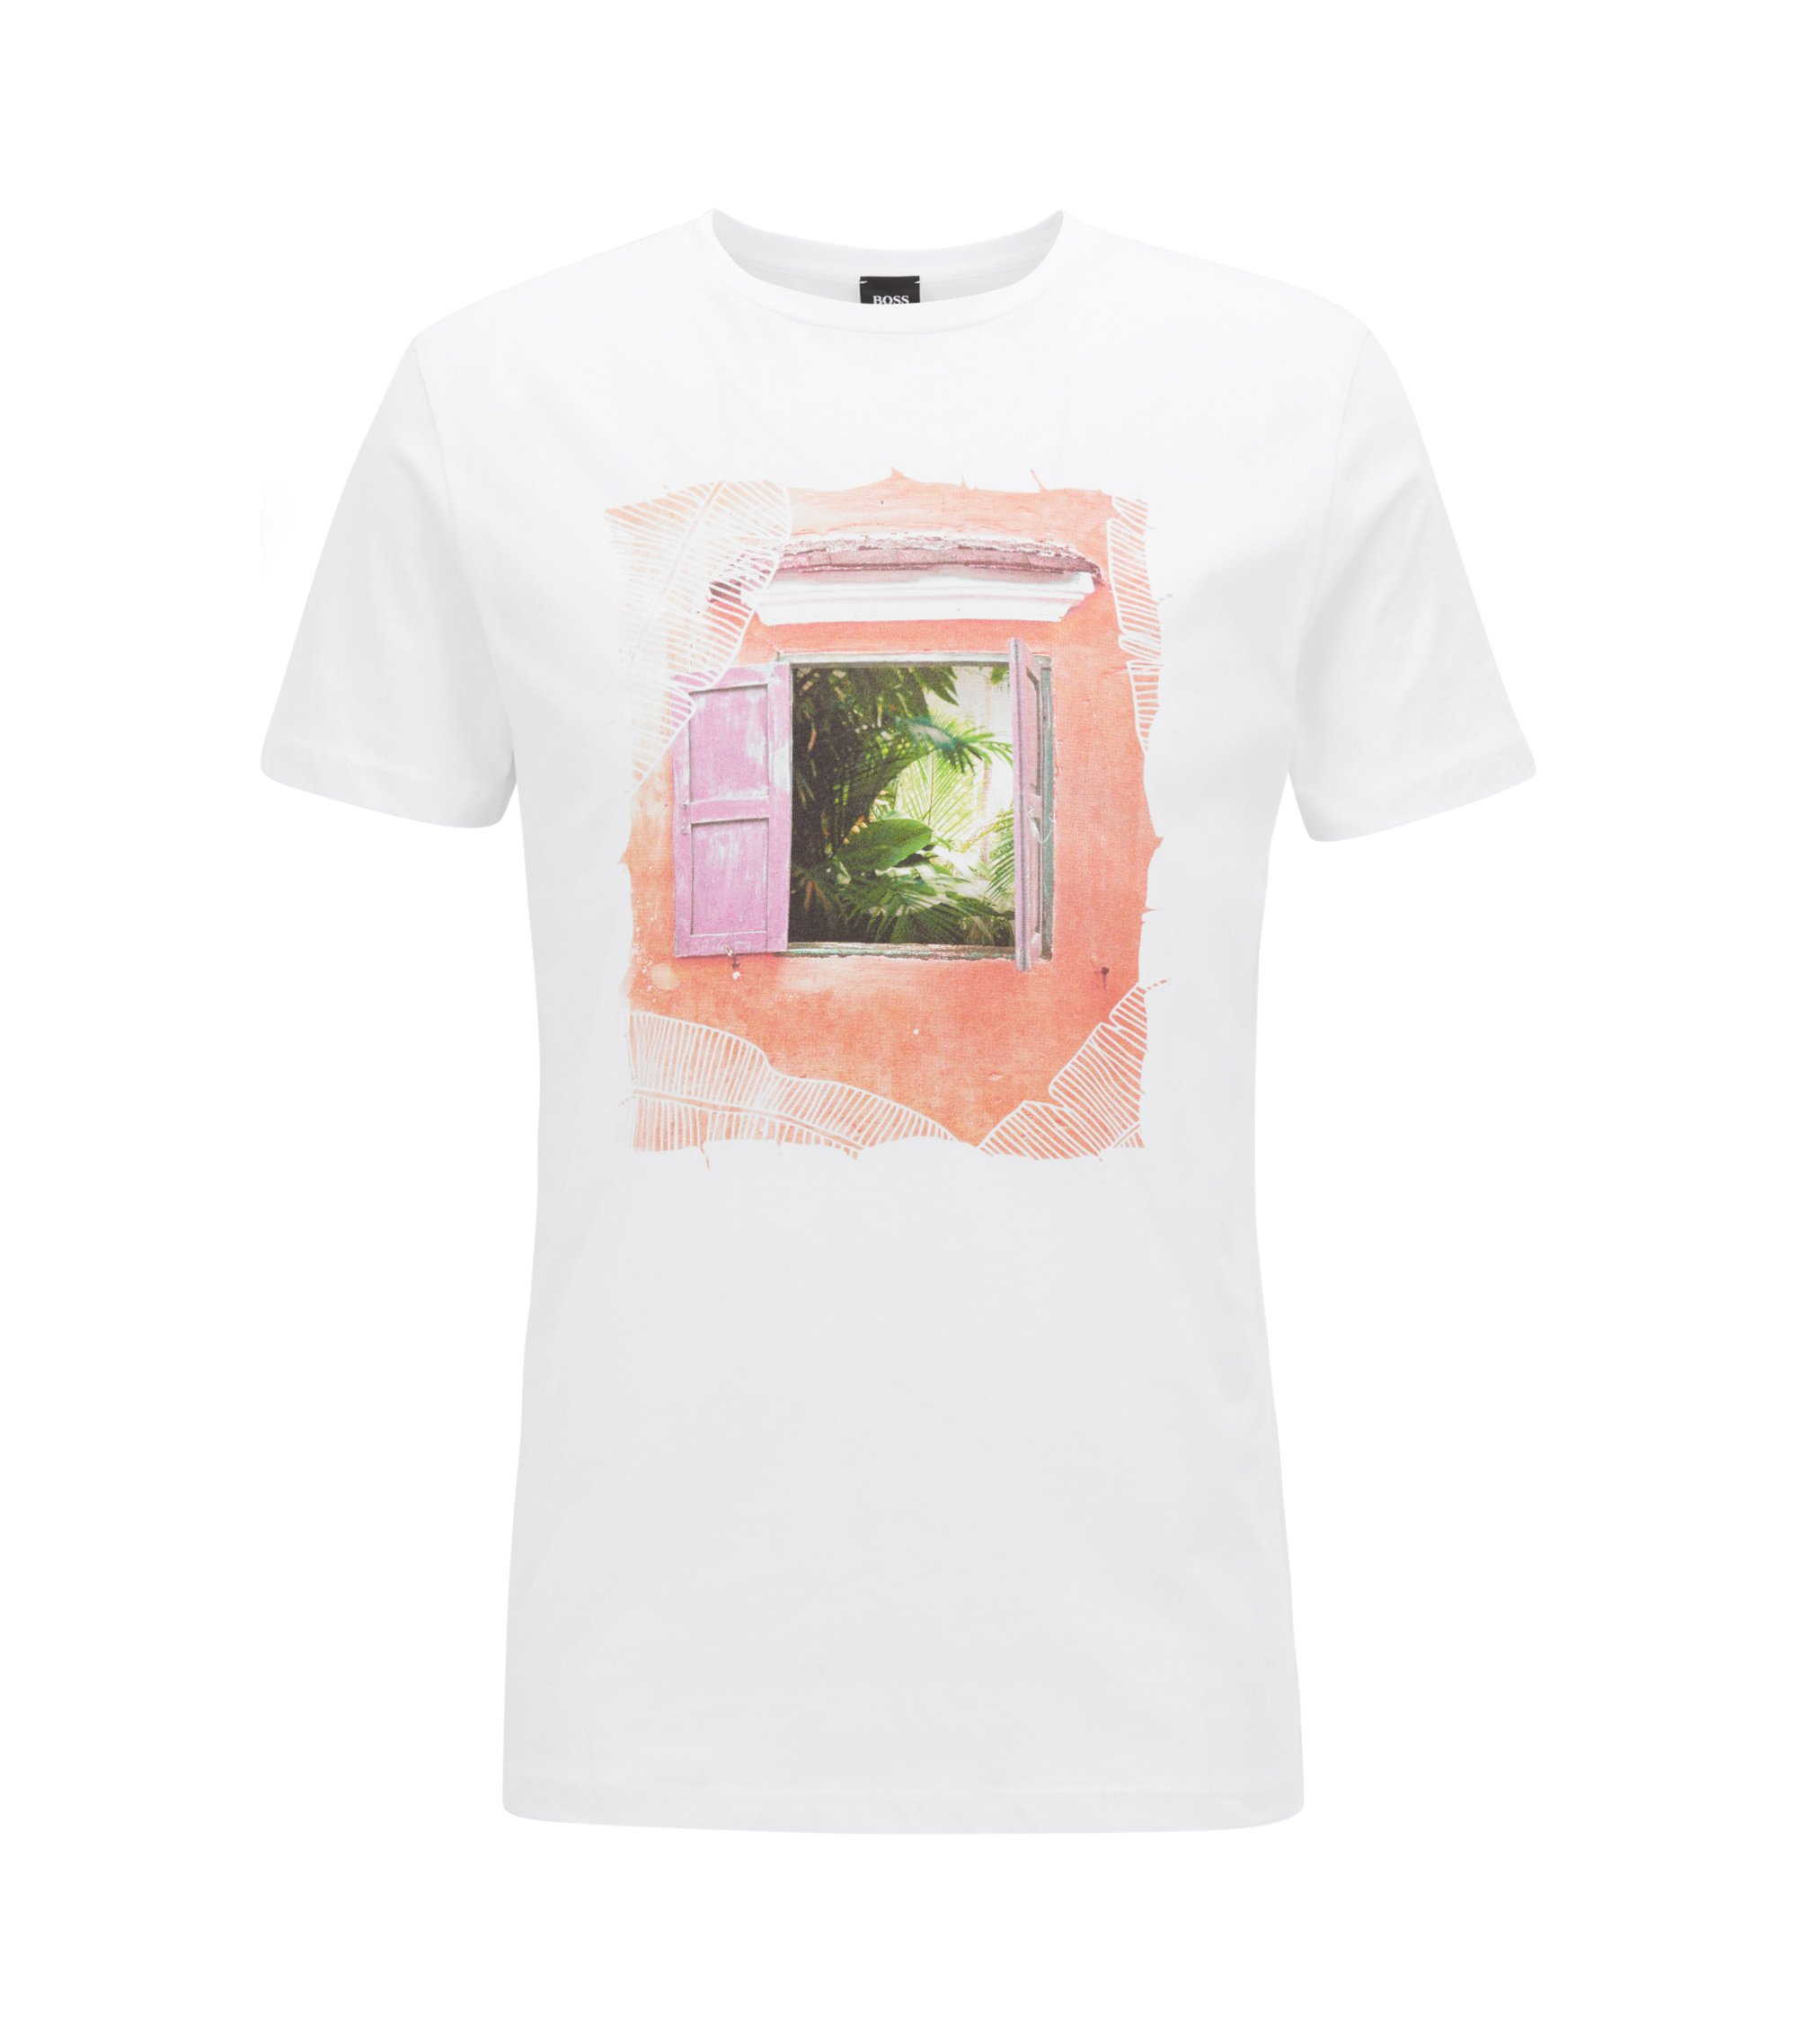 Cuba-Print Cotton Jersey Graphic T-Shirt | Tauno, White